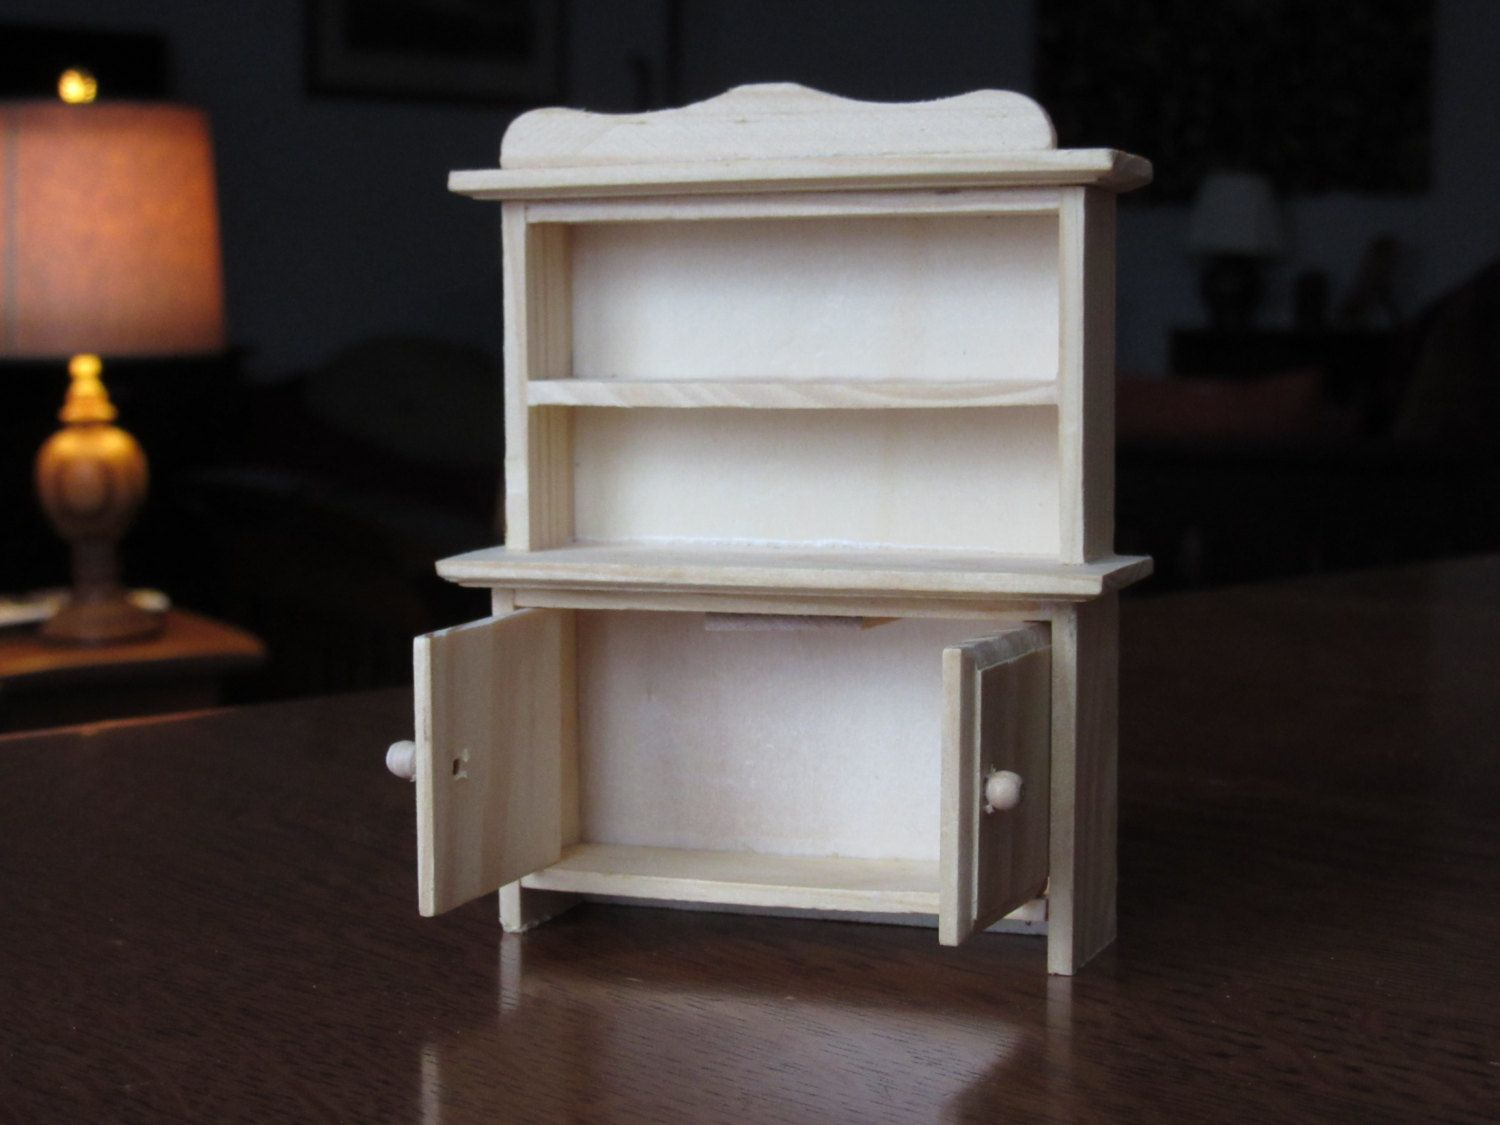 unfinished dollhouse furniture. Vintage Doll House Hutch, Unfinished Wood Dollhouse Furniture, Shelves, Cabinet, Kitchen, Rustic, Rural, Country, Colonial Furniture S